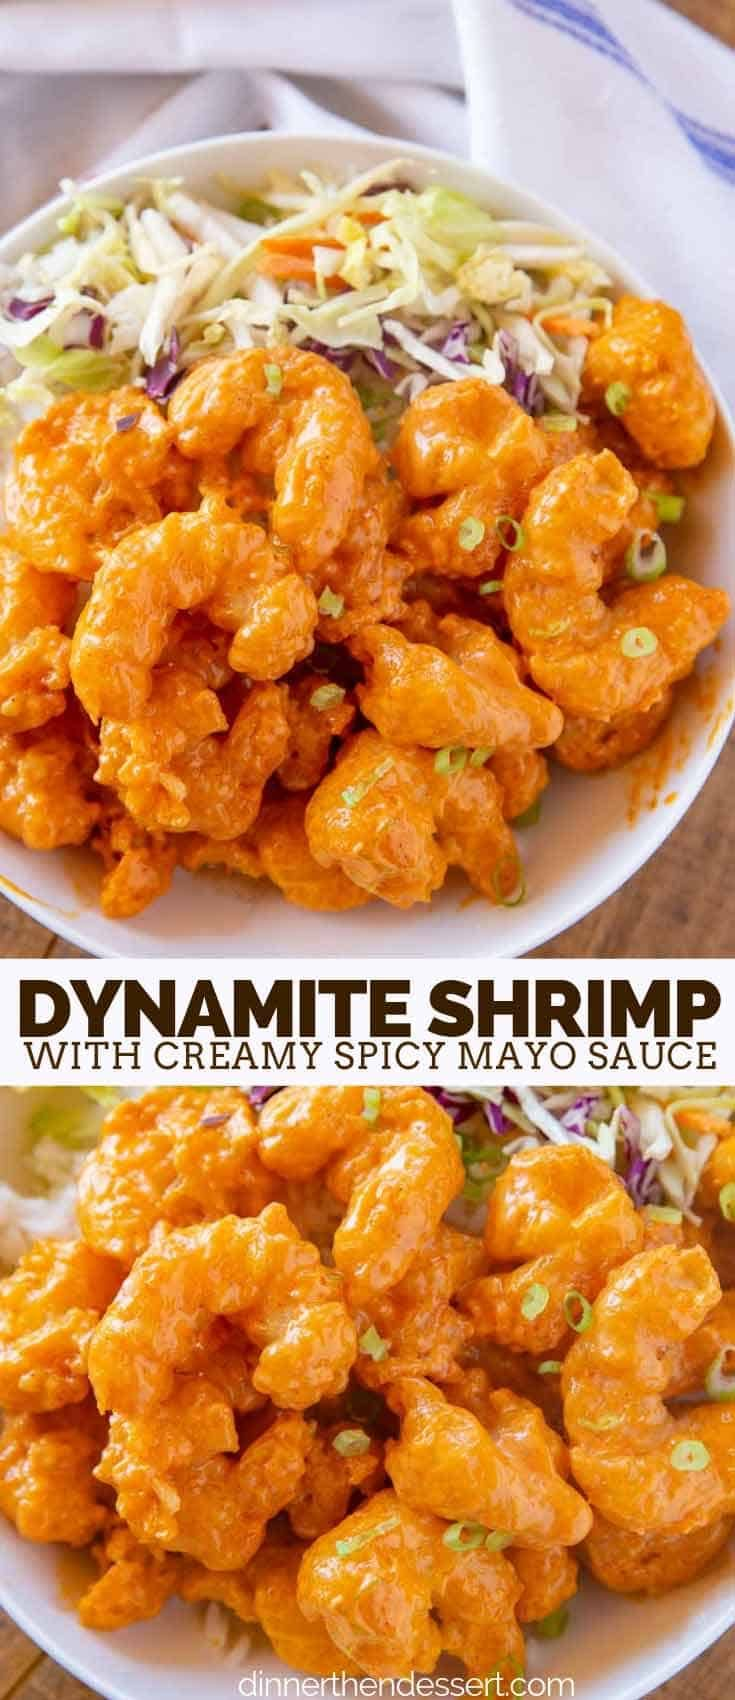 Dynamite Shrimp - Dinner, then Dessert